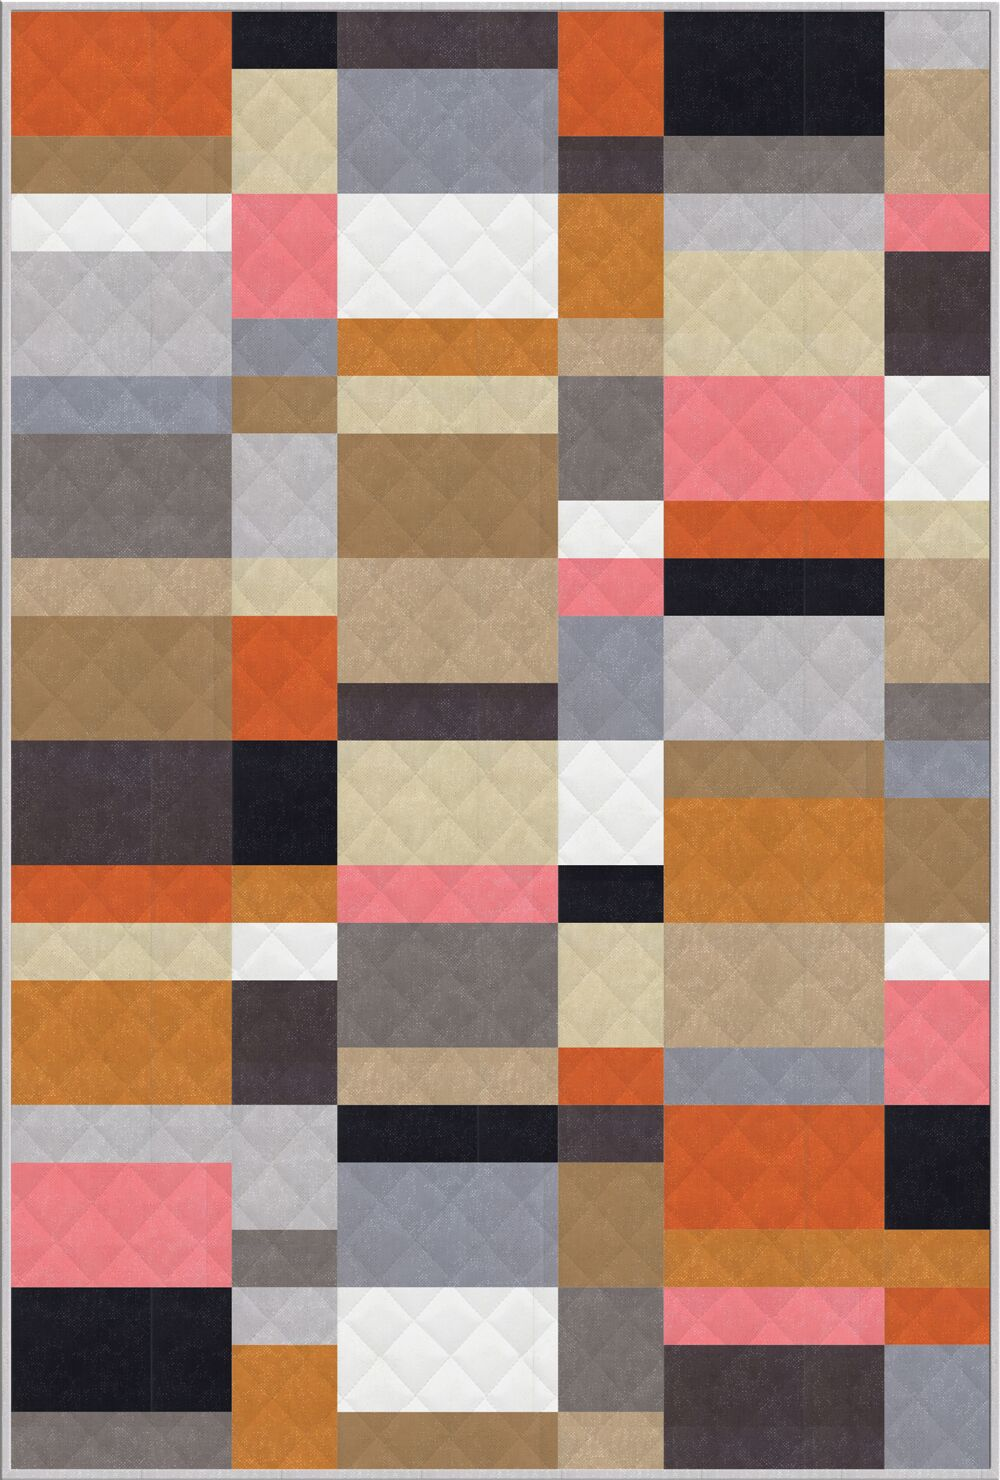 The neutral colors added to Zen Chic's 2019 Spotted collection are a perfect fit for this free quilt pattern, In Color, also from Zen Chic.